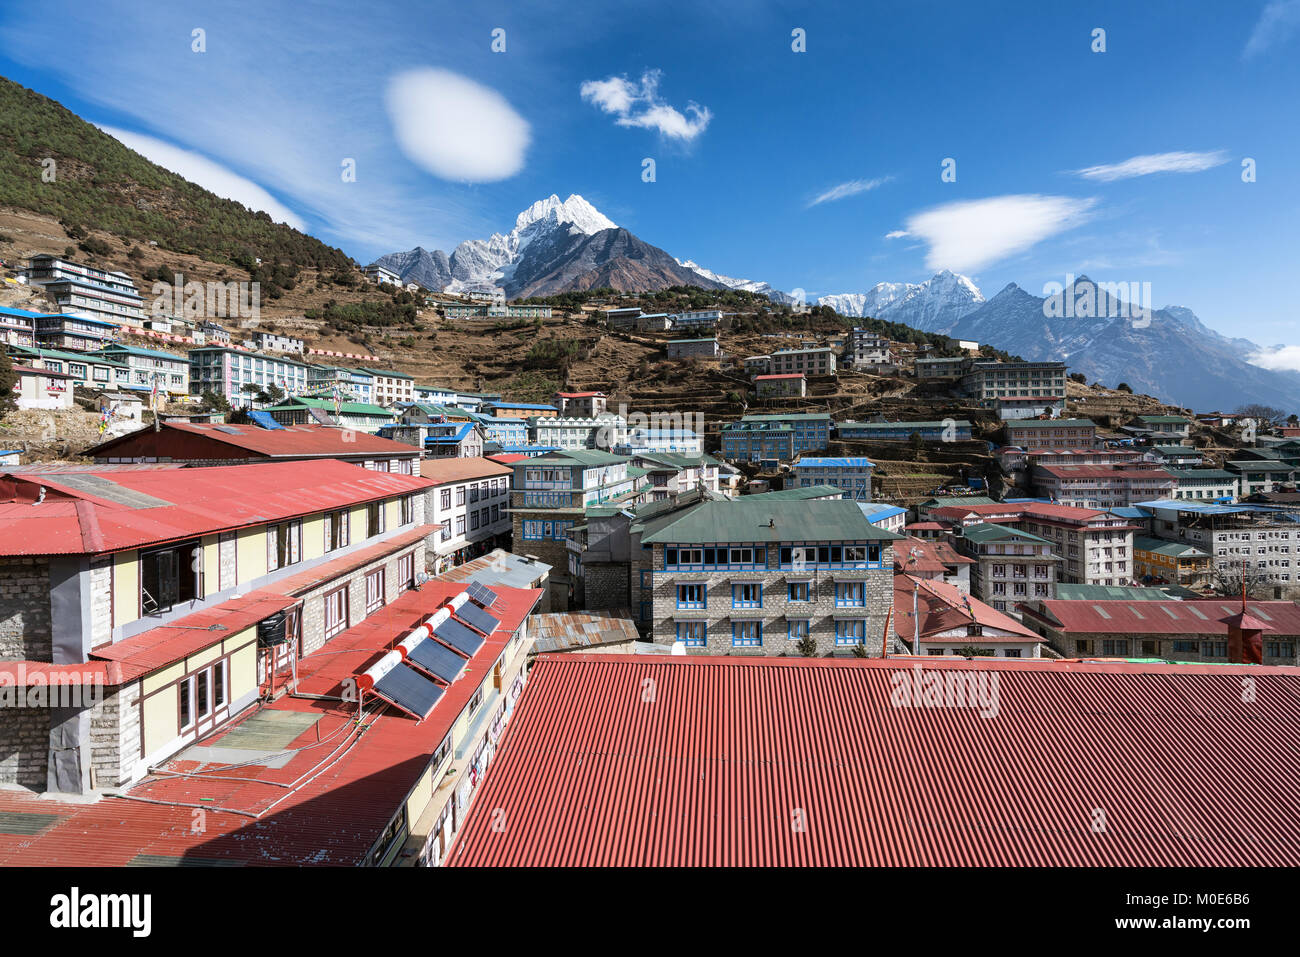 A view from a hotel in Namche Bazaar, Nepal - Stock Image